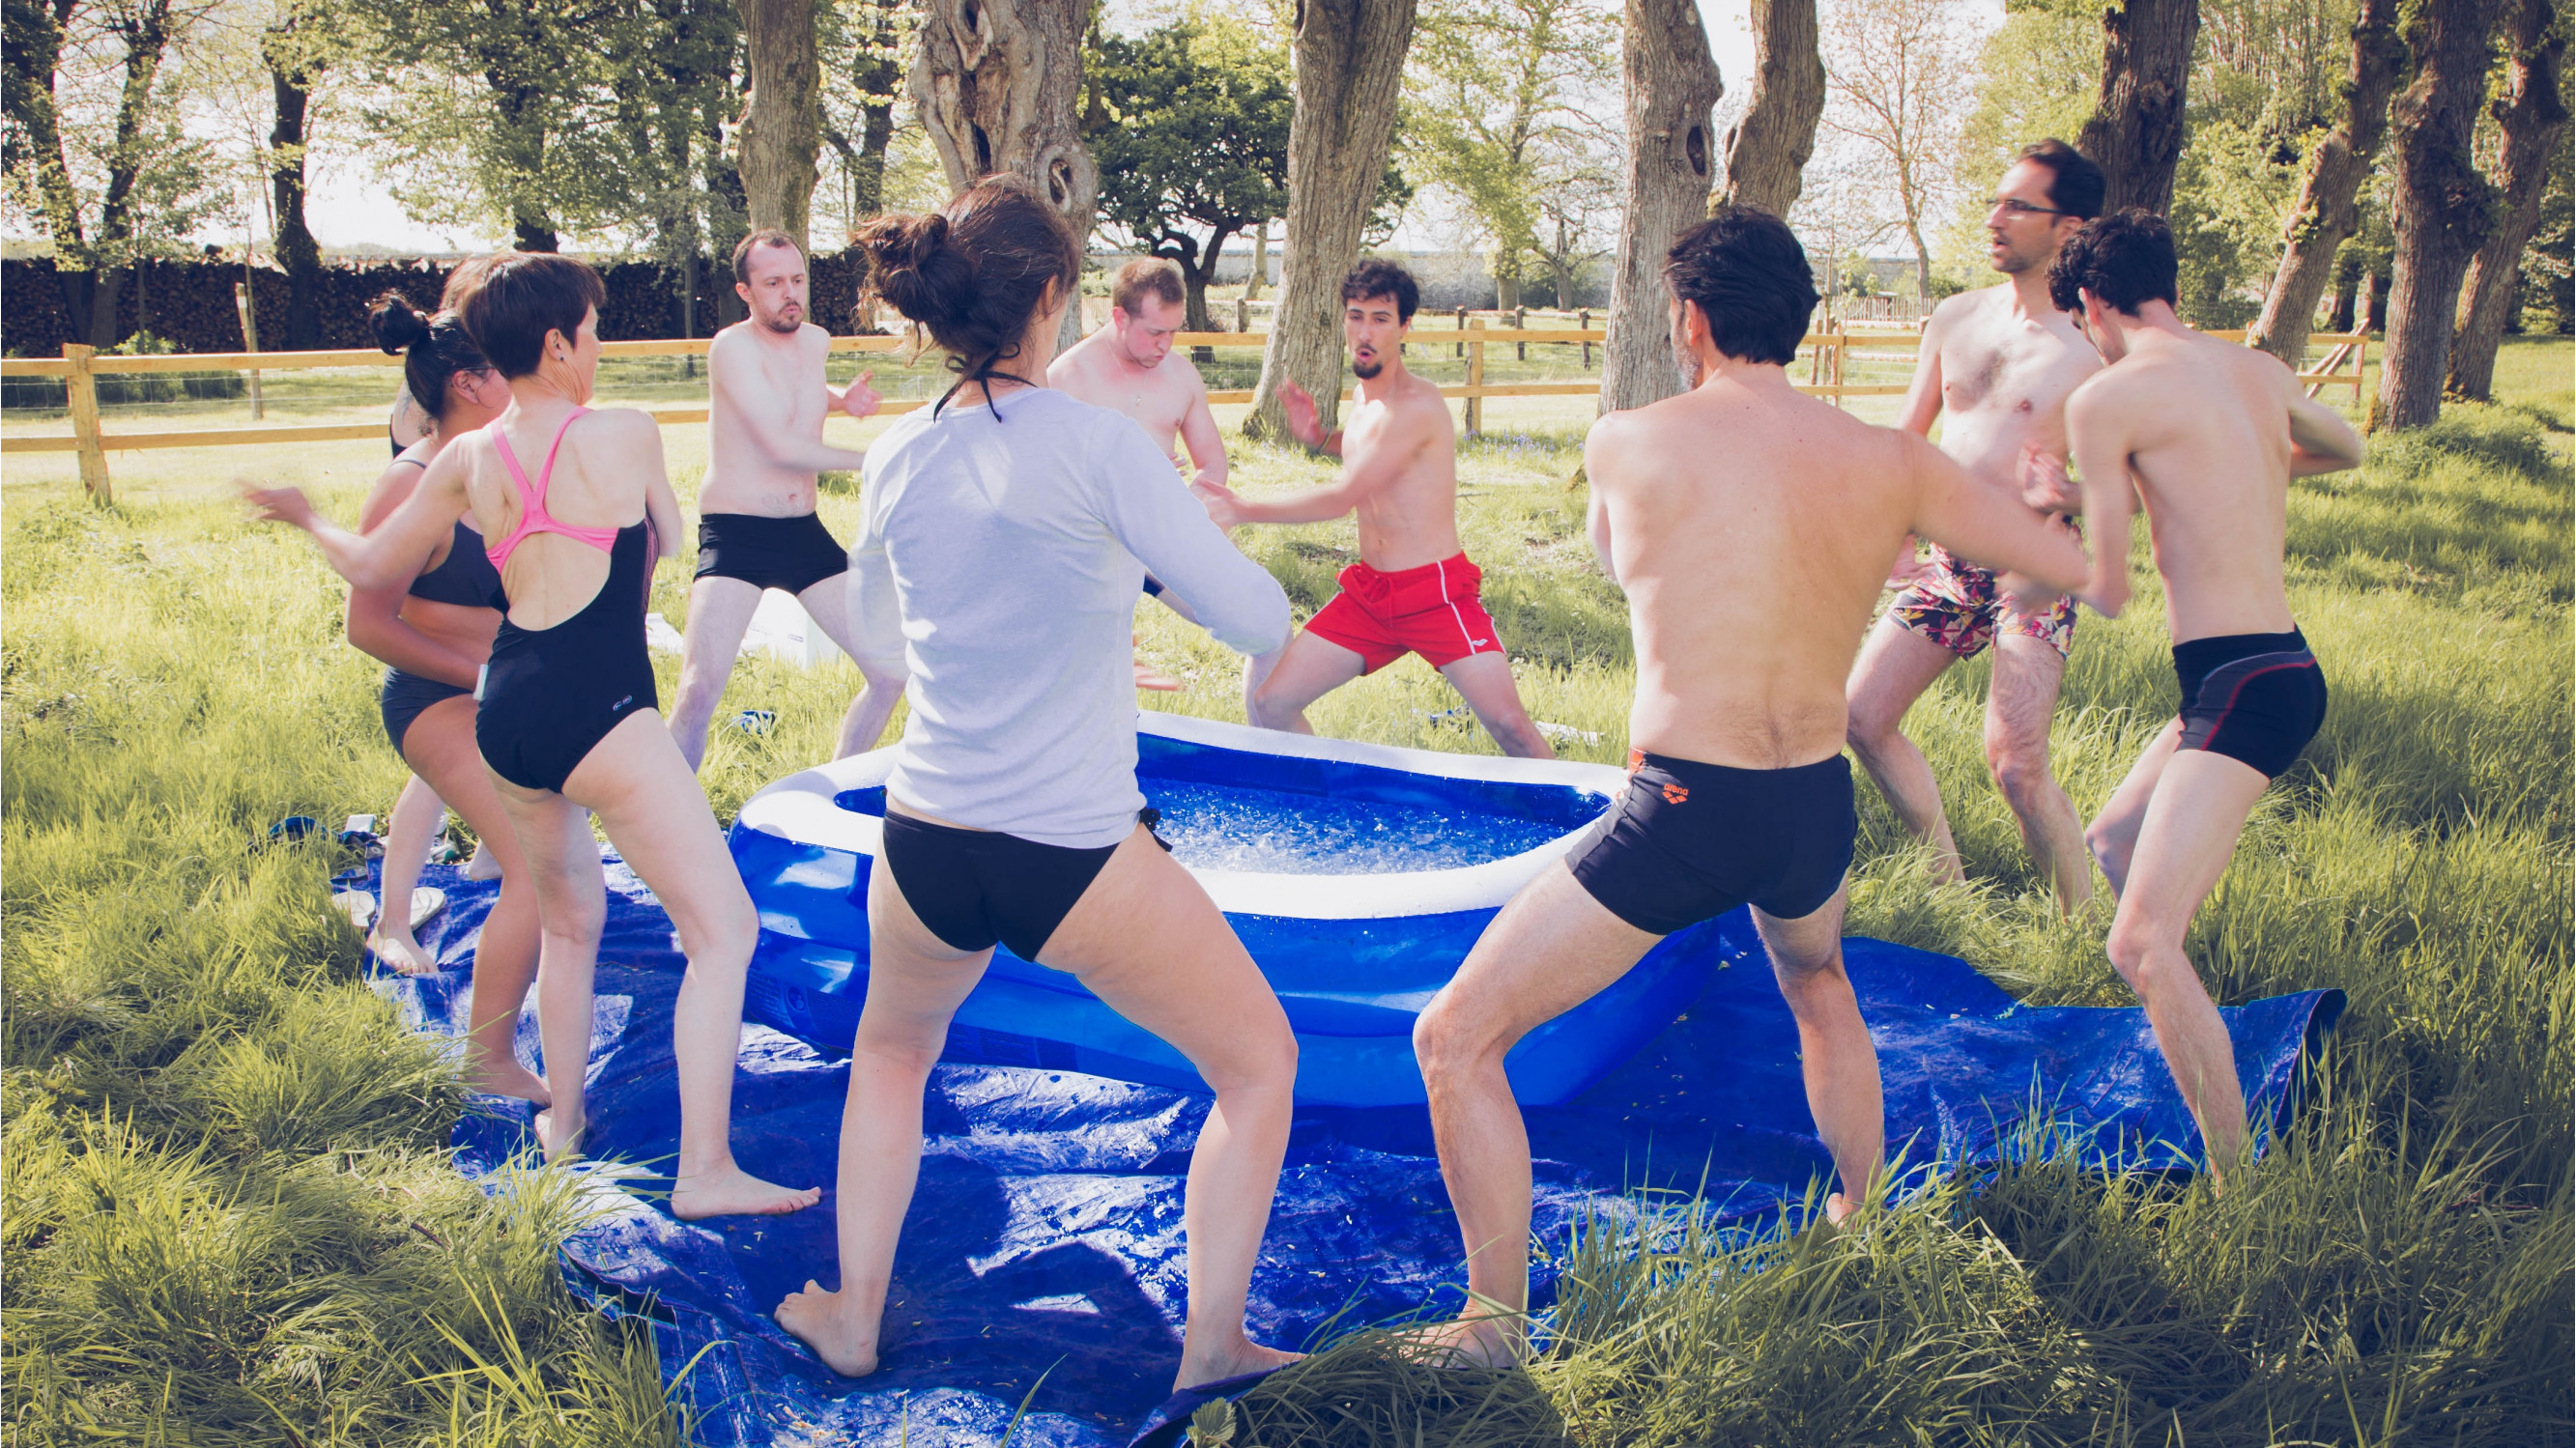 Image 2 of 9 - Experience Ice Bath to get an impression of WHM Fundamentals Workshop at Boissy-lès-Perche